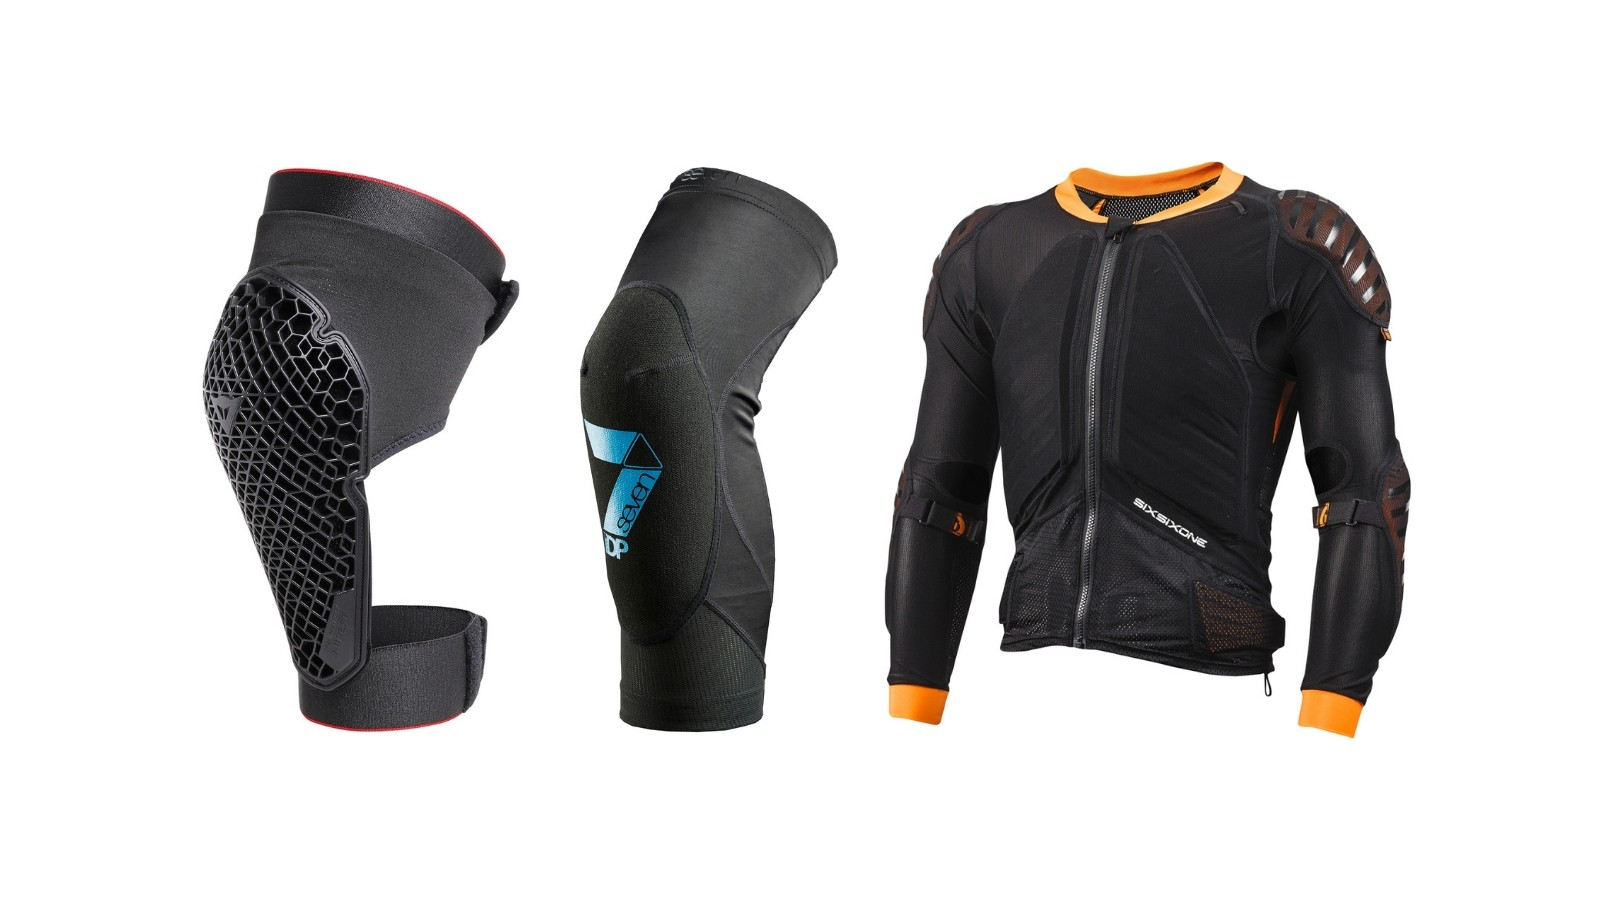 Cycling MTB armour and pads